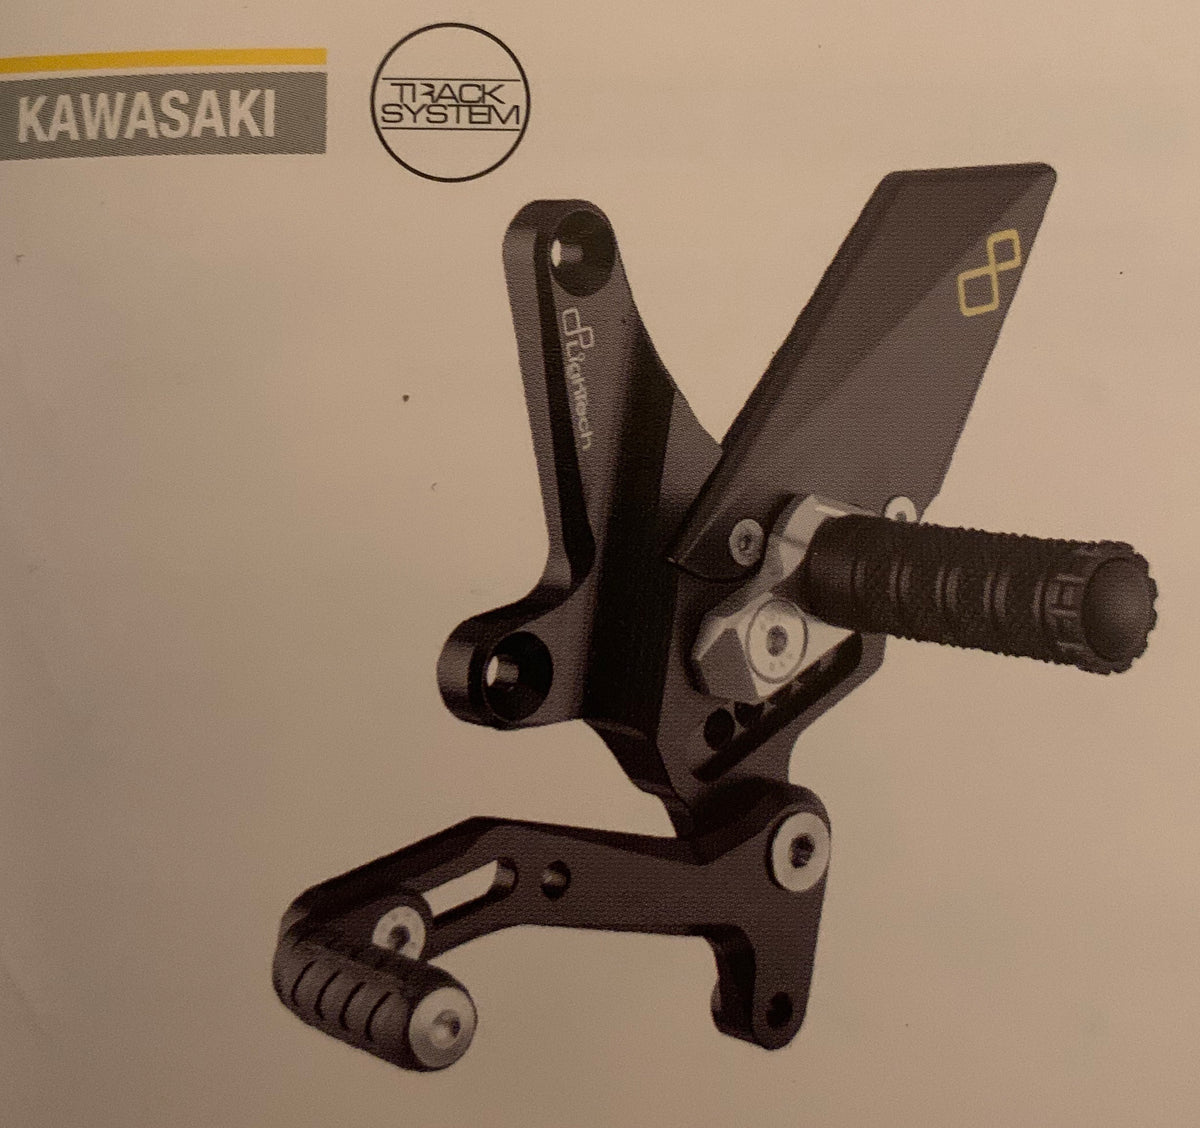 Kawasaki - Adjustable Rearsets, Rearsets, LighTech - Averys Motorcycles